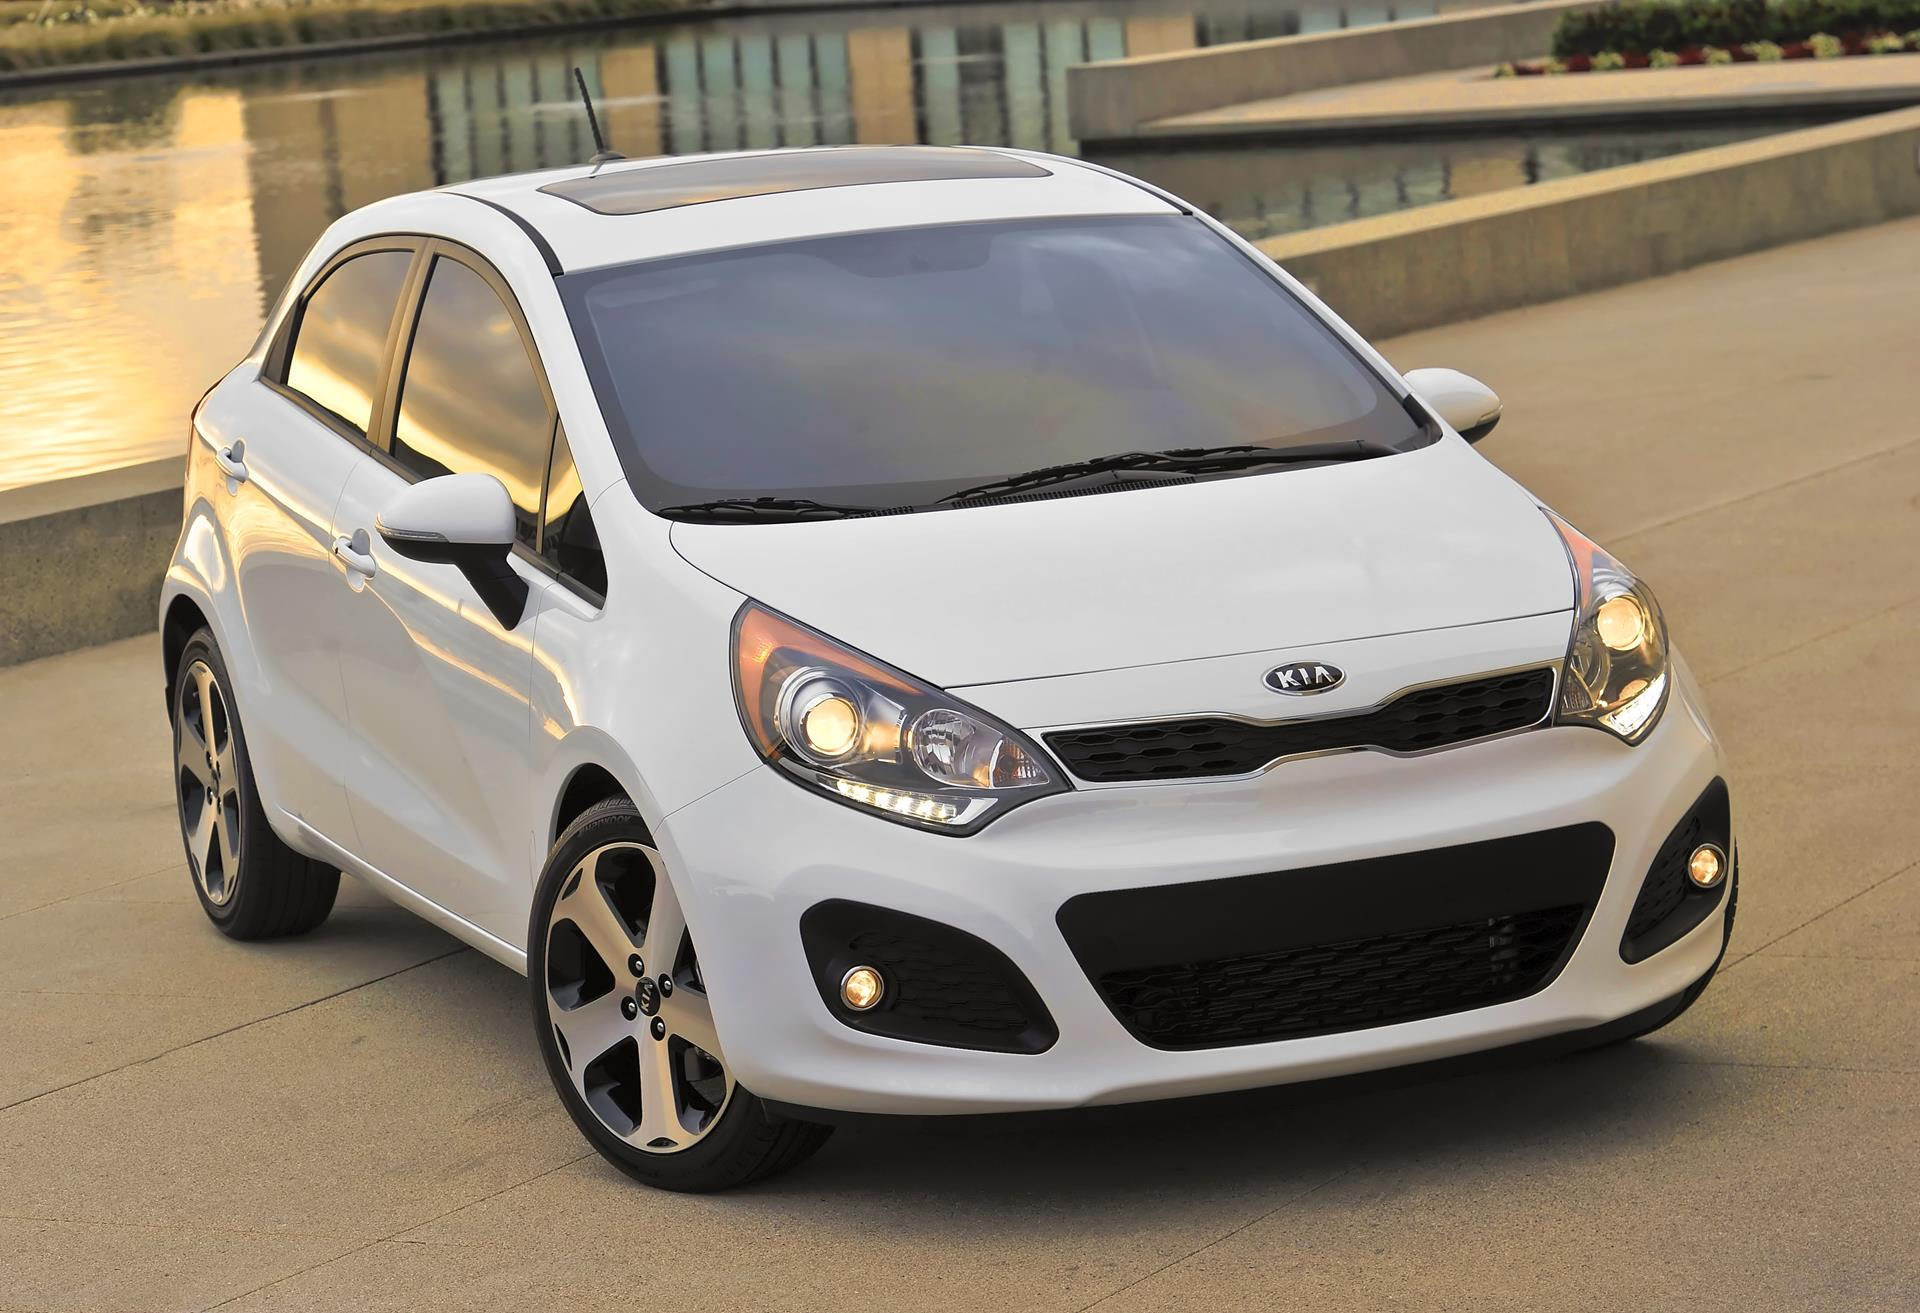 2015 kia rio 5 door news and information. Black Bedroom Furniture Sets. Home Design Ideas